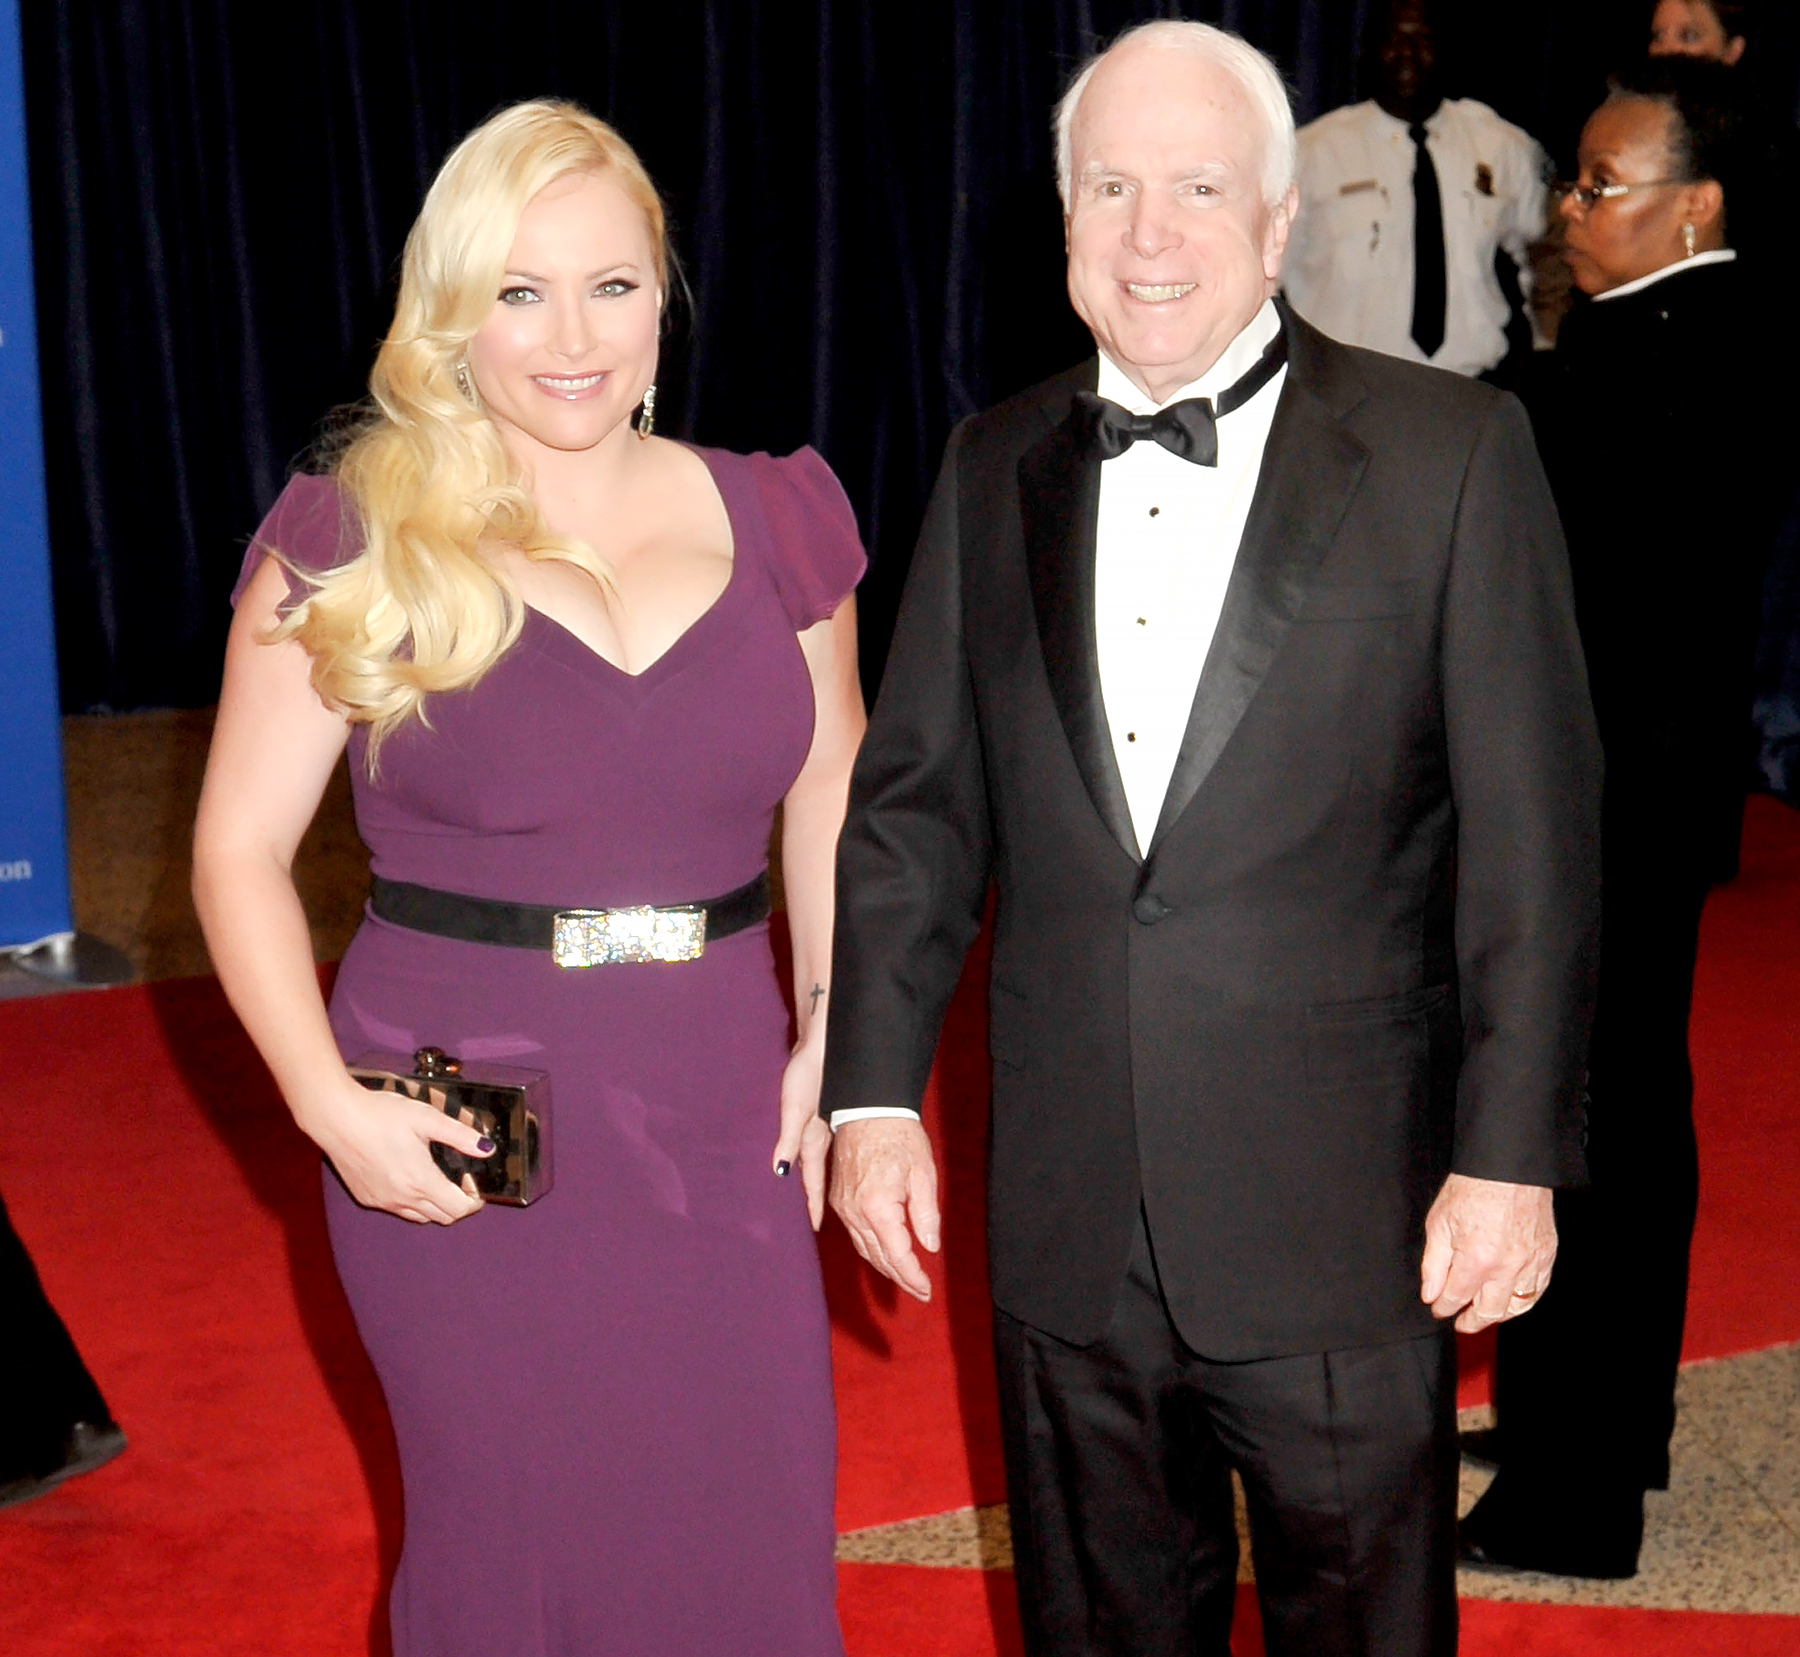 Meghan McCain and John McCain attend the 100th Annual White House Correspondents' Association Dinner at the Washington Hilton on May 3, 2014 in Washington, DC.